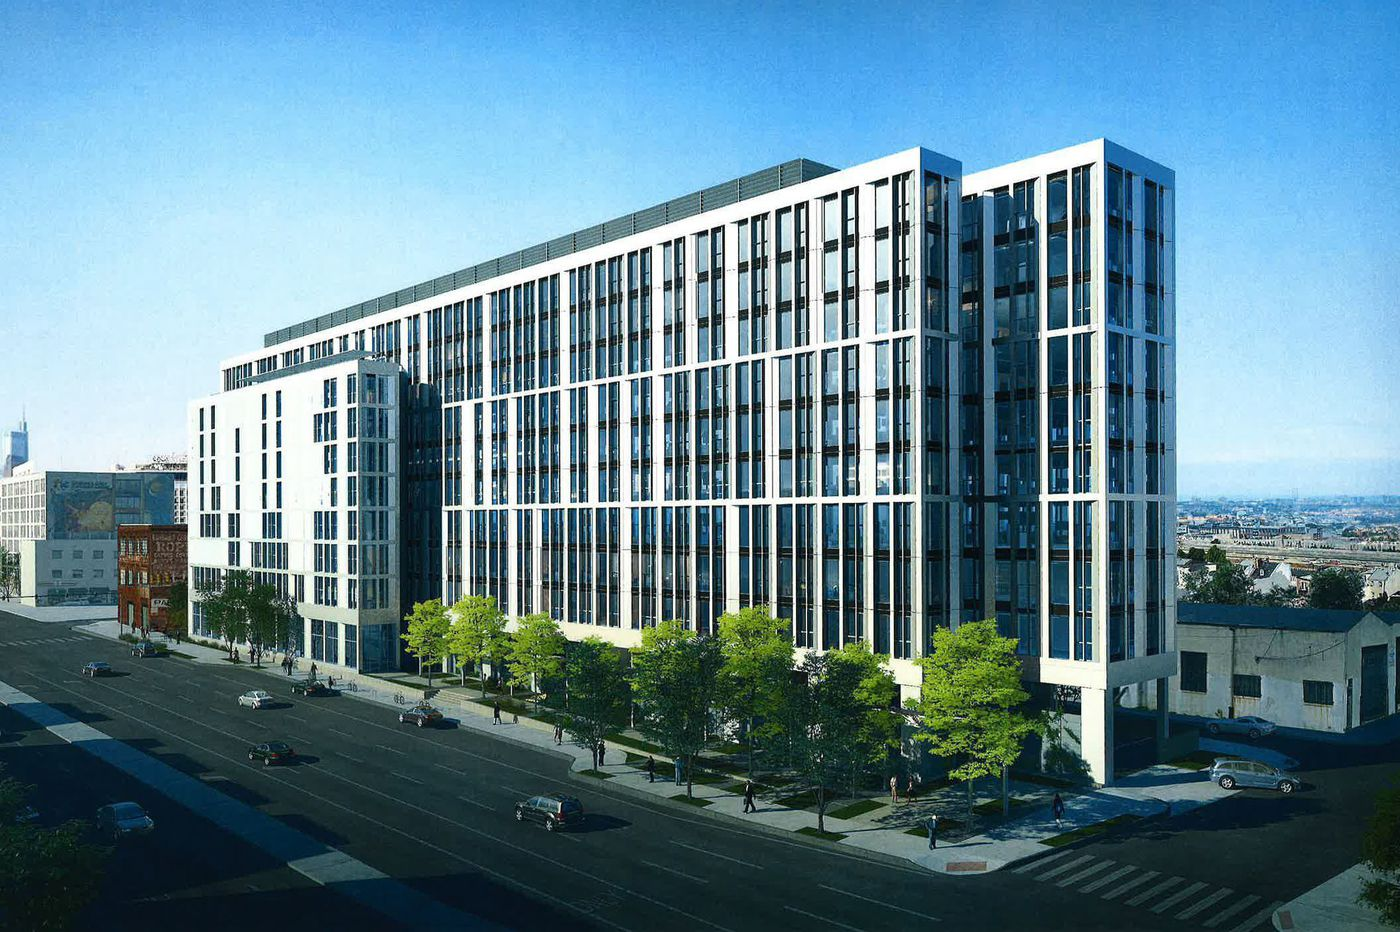 Developer Streamline plans apartments spanning city block near waterfront in Fishtown